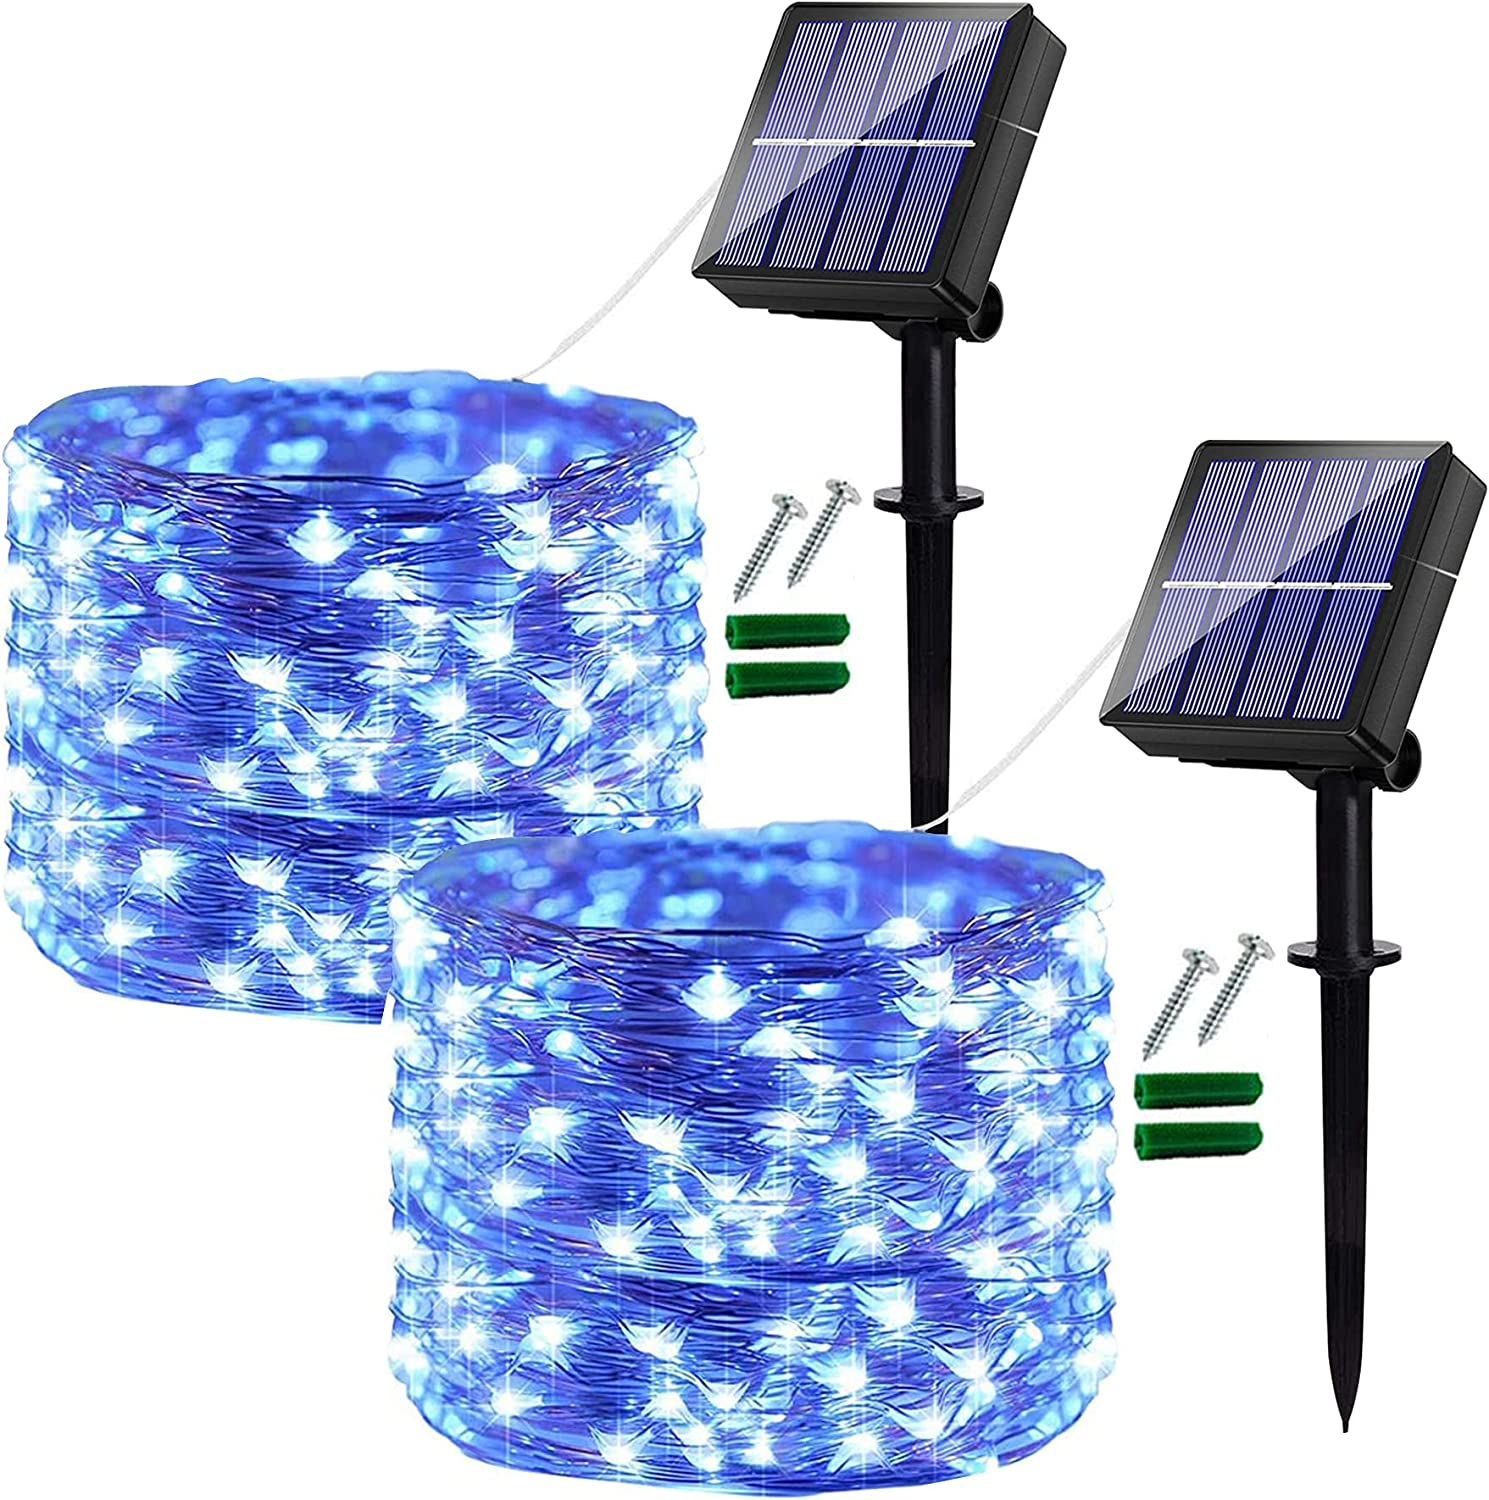 [2 Pack] Solar Fairy Lights Outdoor, 120 LED Solar Garden Lights Outdoor Waterproof , 14M/46Ft 8 Modes Copper Wire Decorative Solar String Lights for Garden, Patio, Yard, Party, Wedding (Blue)